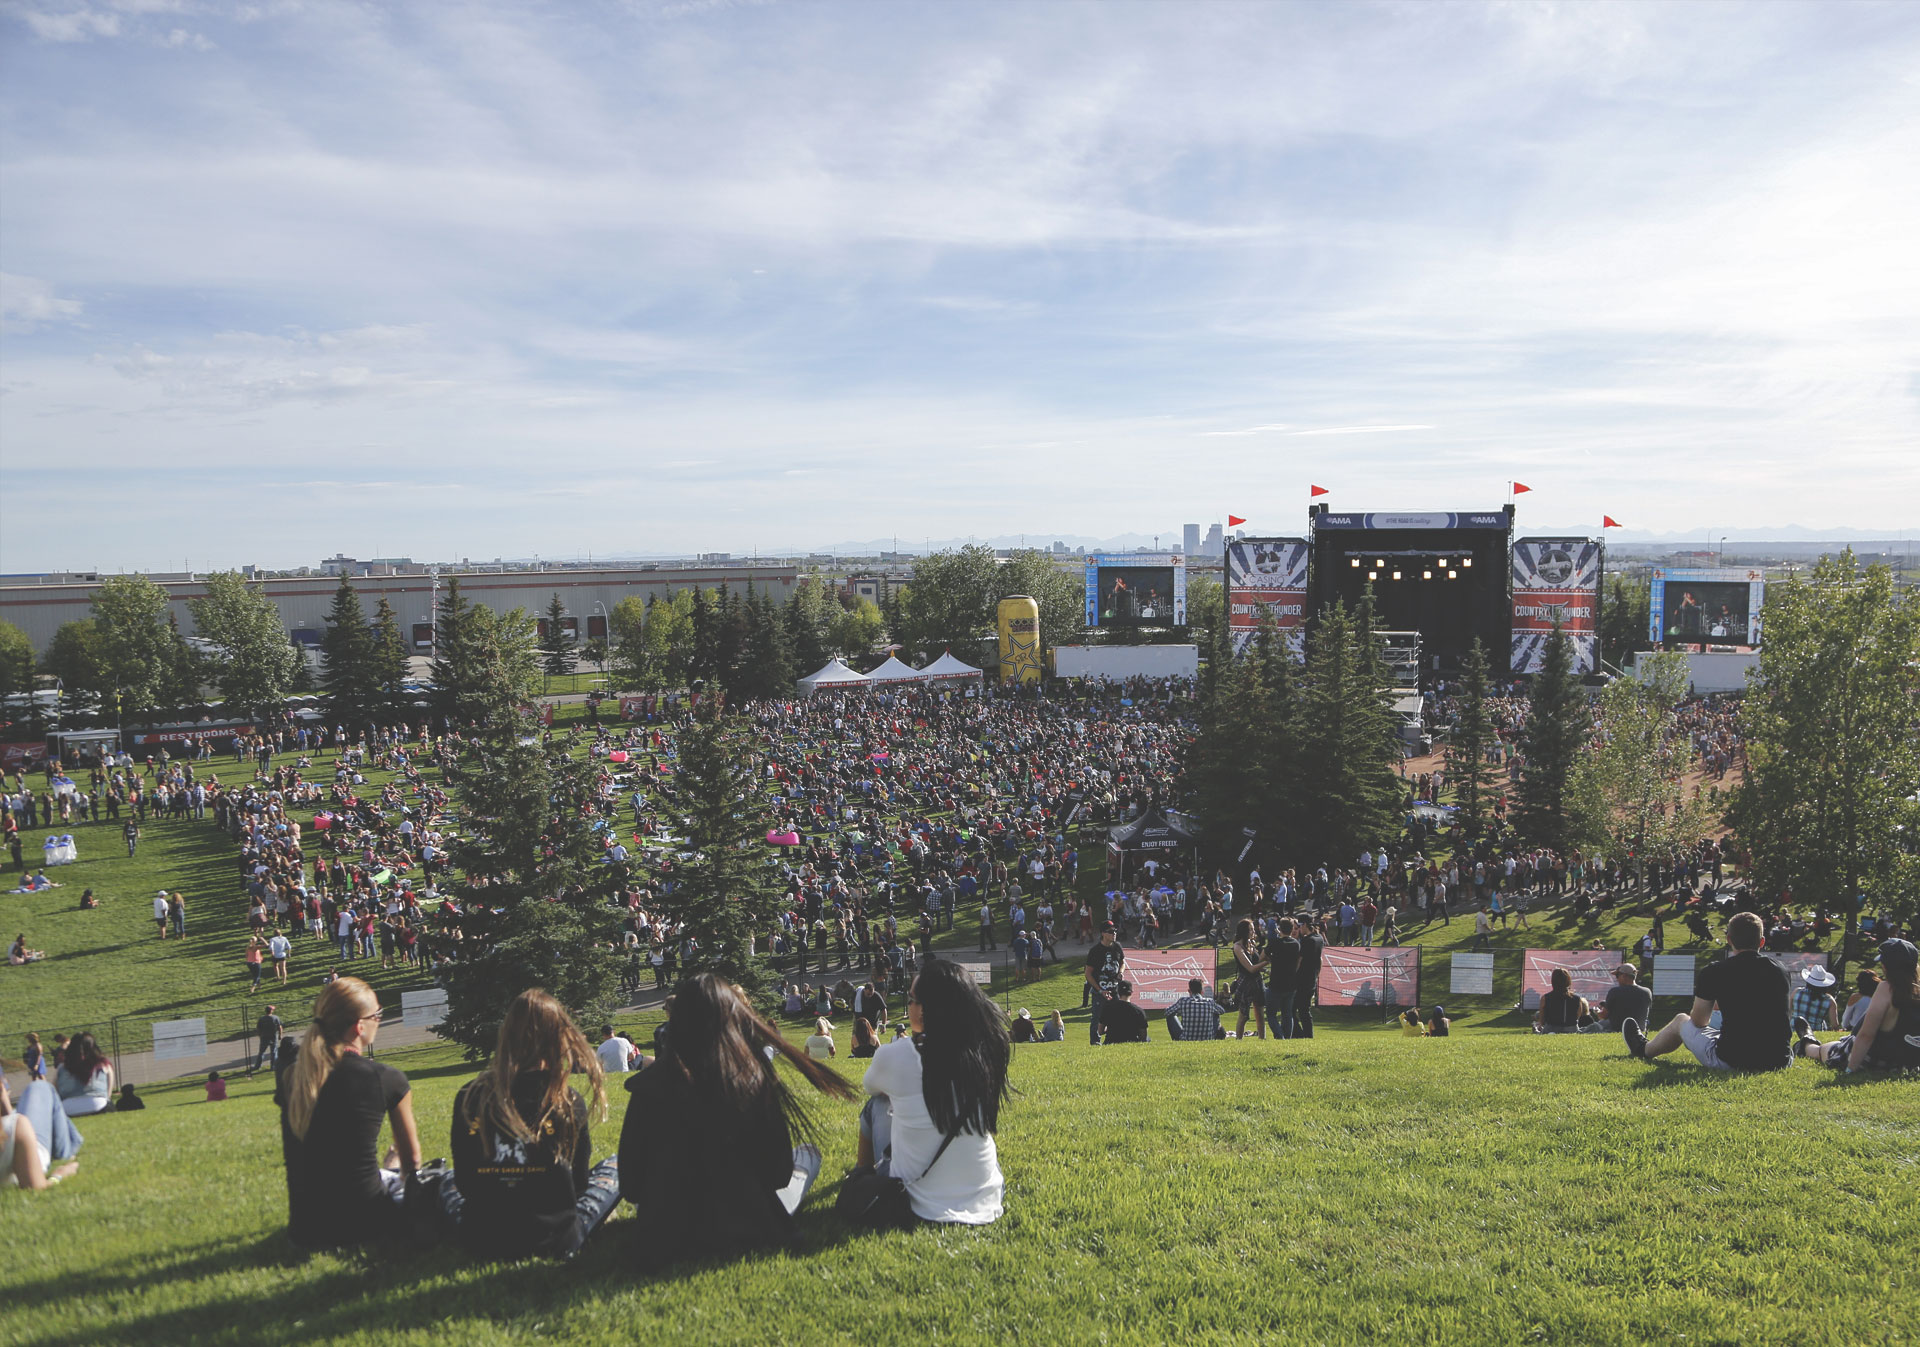 The biggest names in country music come to Calgary for Country Thunder.